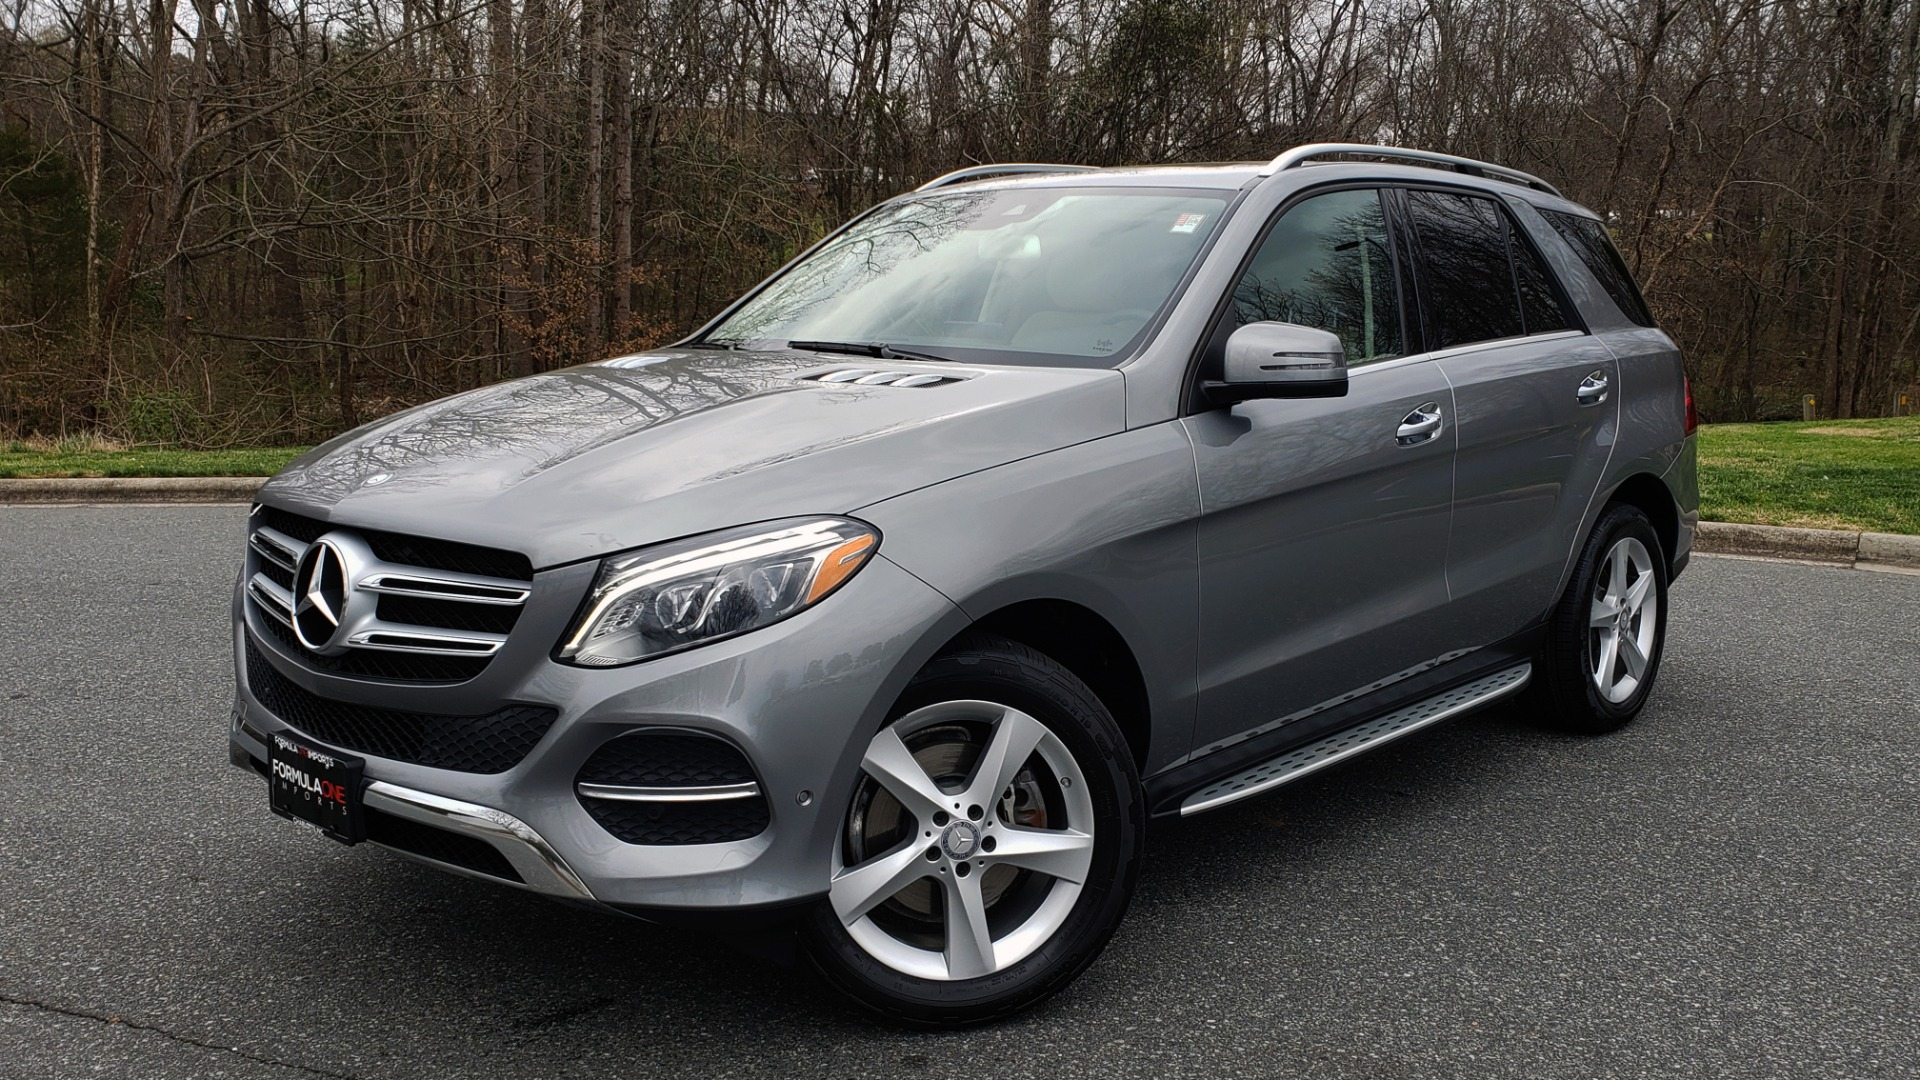 Used 2016 Mercedes-Benz GLE 350 4MATIC / PREMIUM / LIGHTING / NAV / SUNROOF / HTD STS / REAR for sale Sold at Formula Imports in Charlotte NC 28227 1